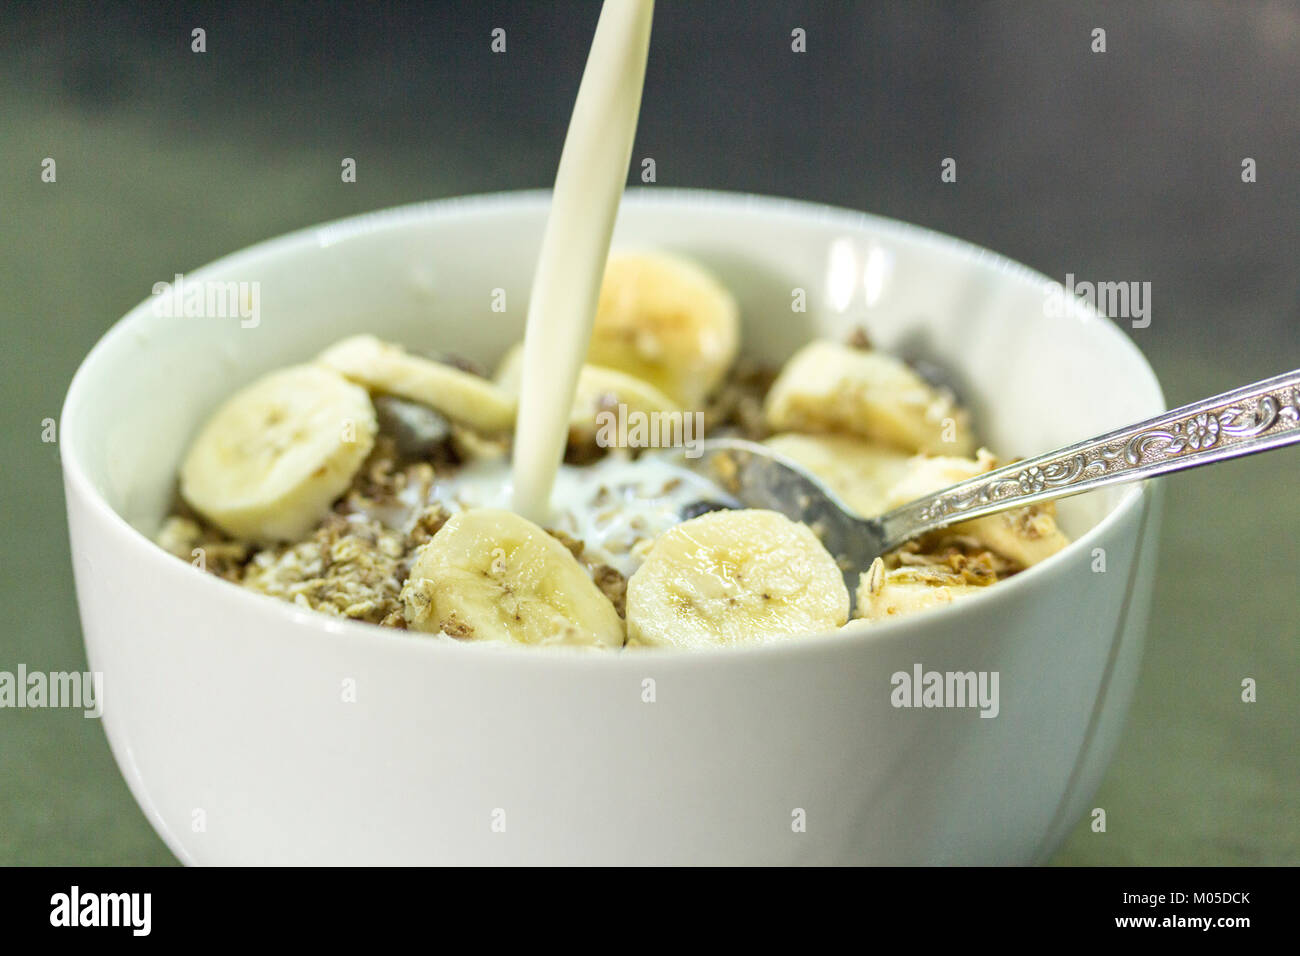 Breakfast idea bowl of cerial muesli with sliced banana and milk one of your five a day fruits and carbohydrates - Stock Image